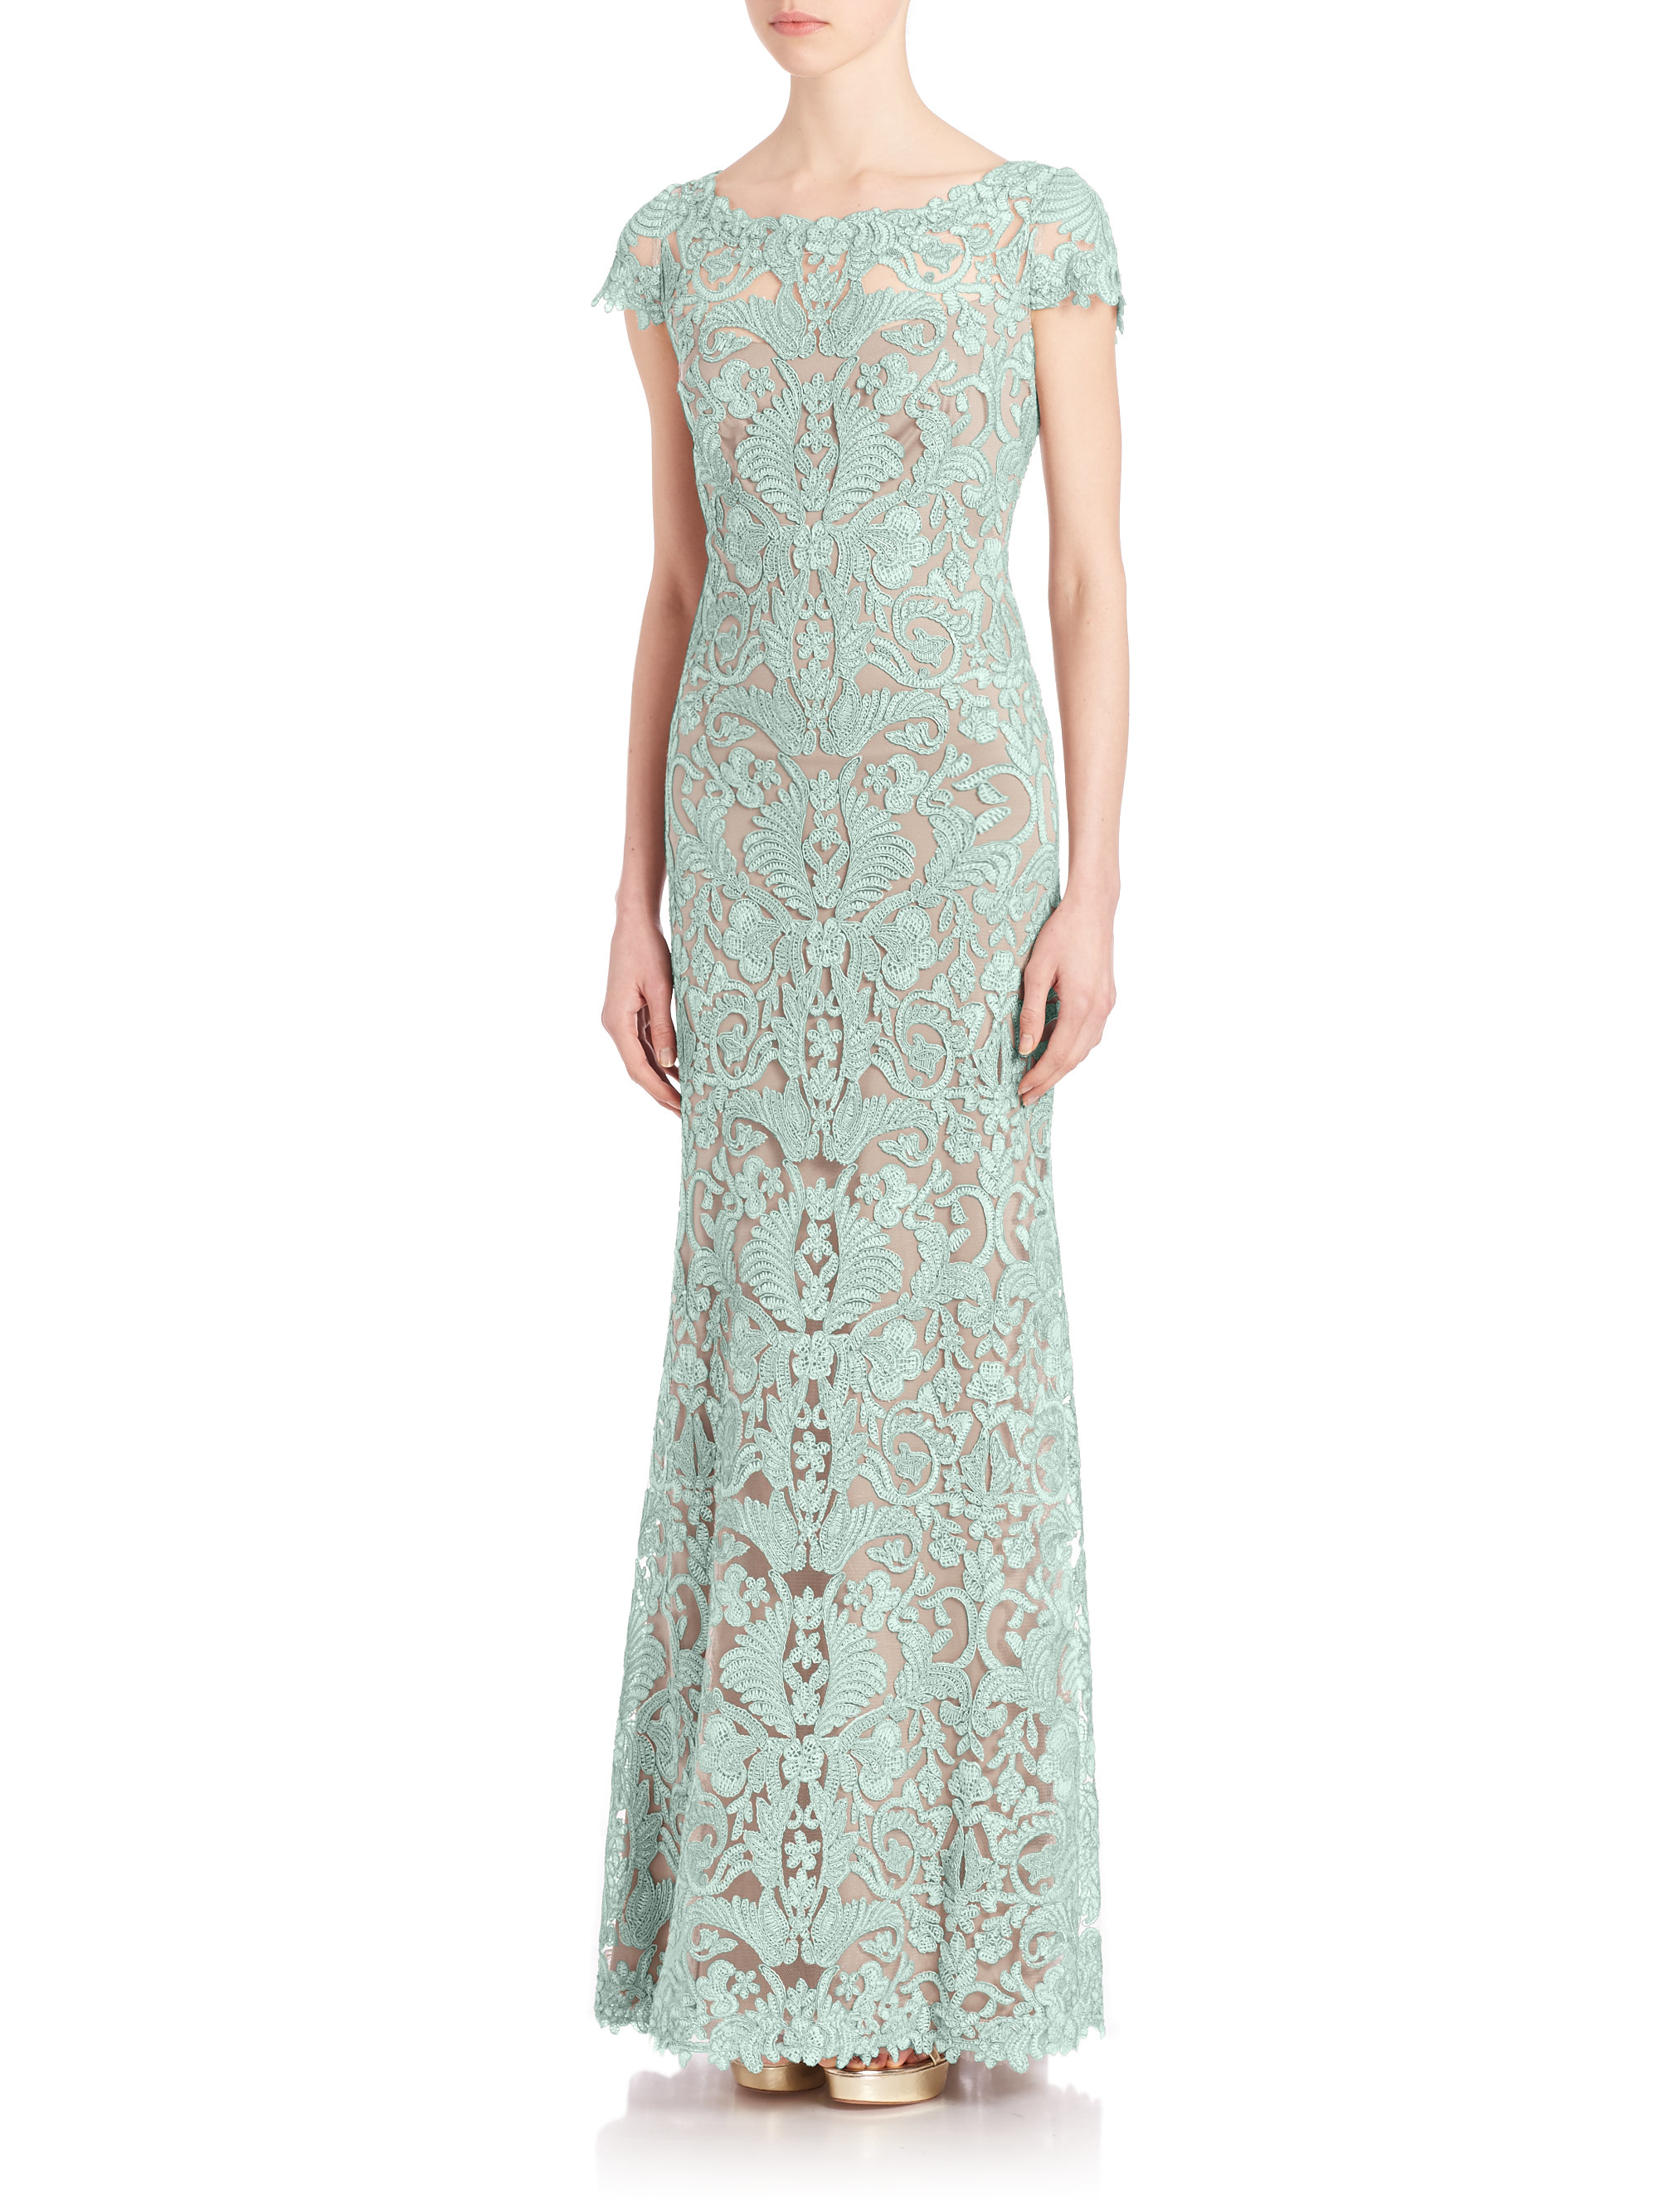 f39fd3699e03 Tadashi Shoji Embroidered Boat-Neck Lace Gown in Green - Lyst